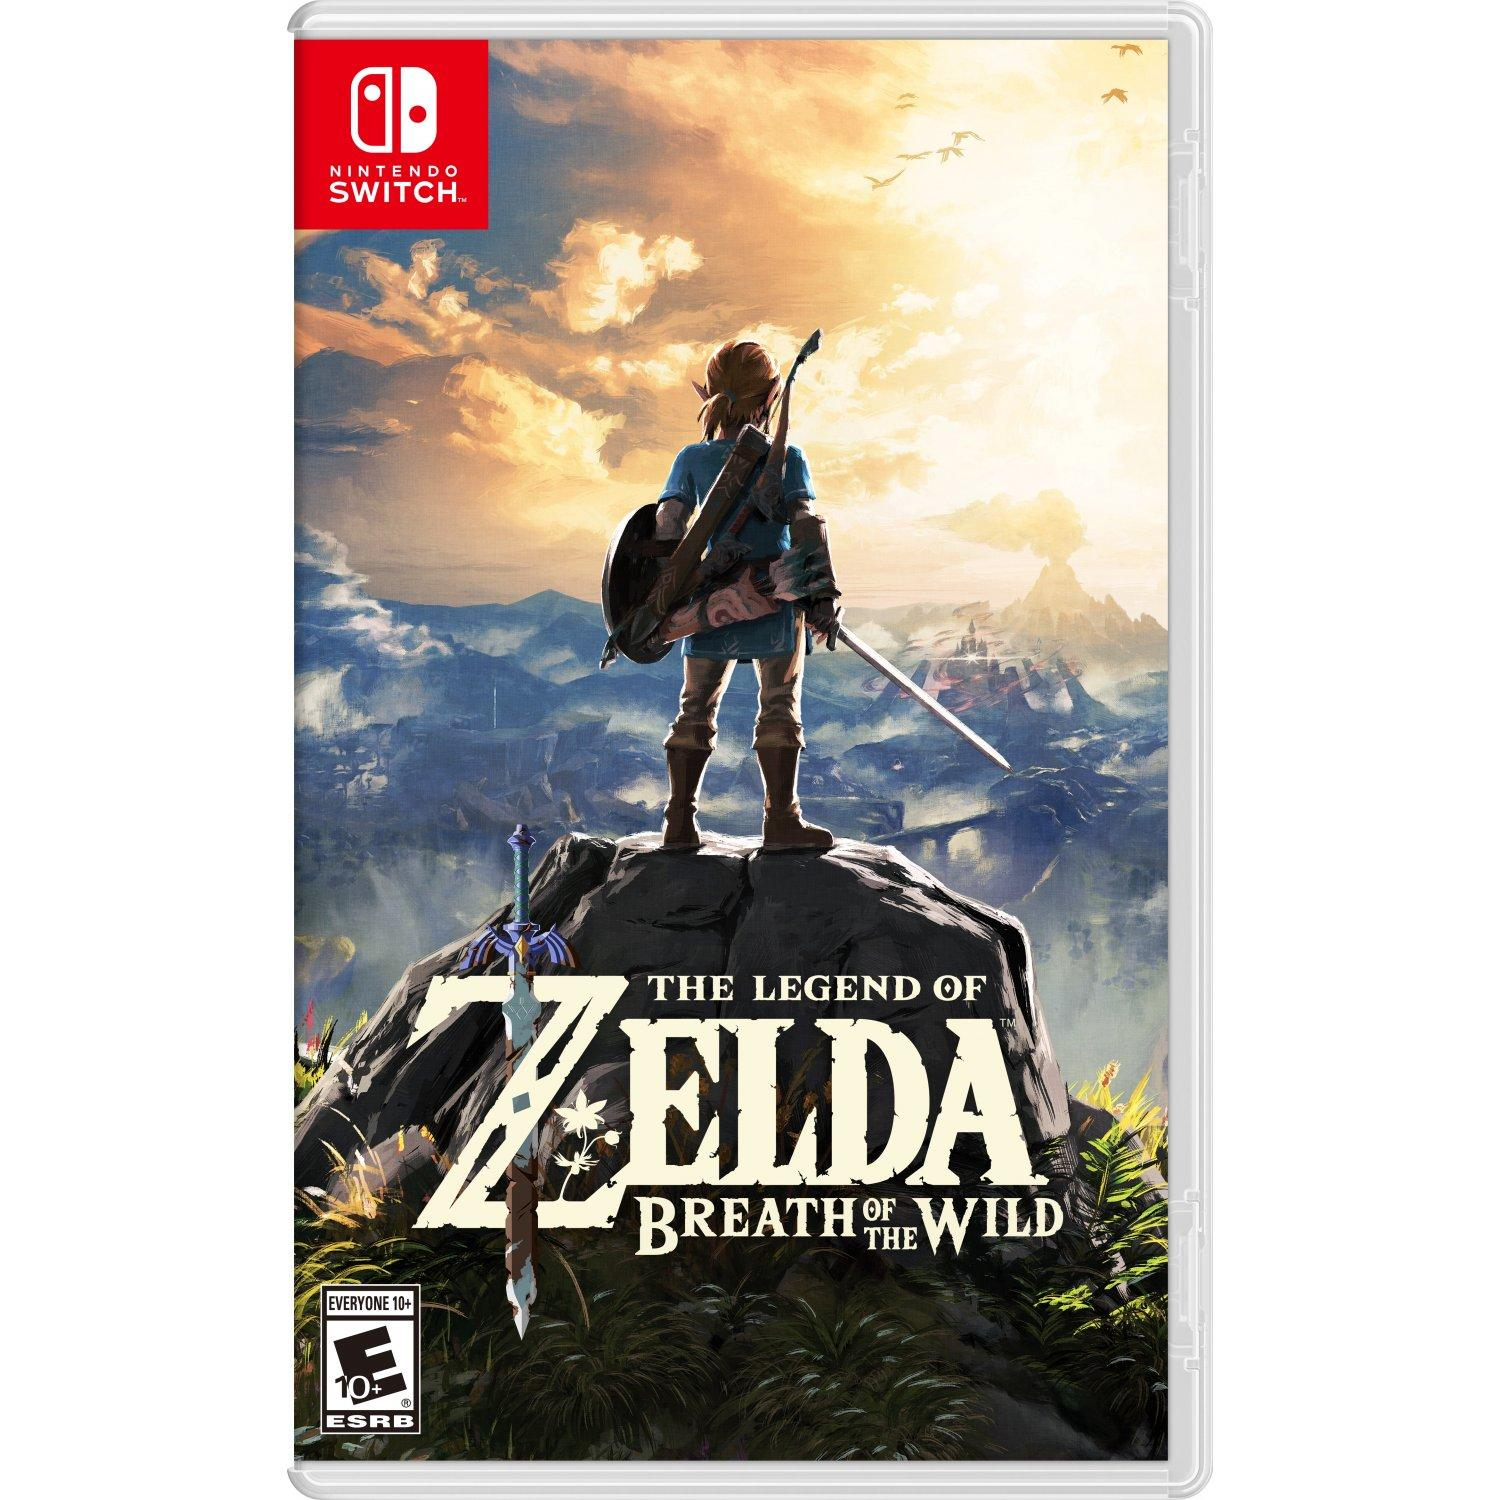 Best Offer Nintendo Switch The Legend Of Zelda Breath Of The Wild As R3